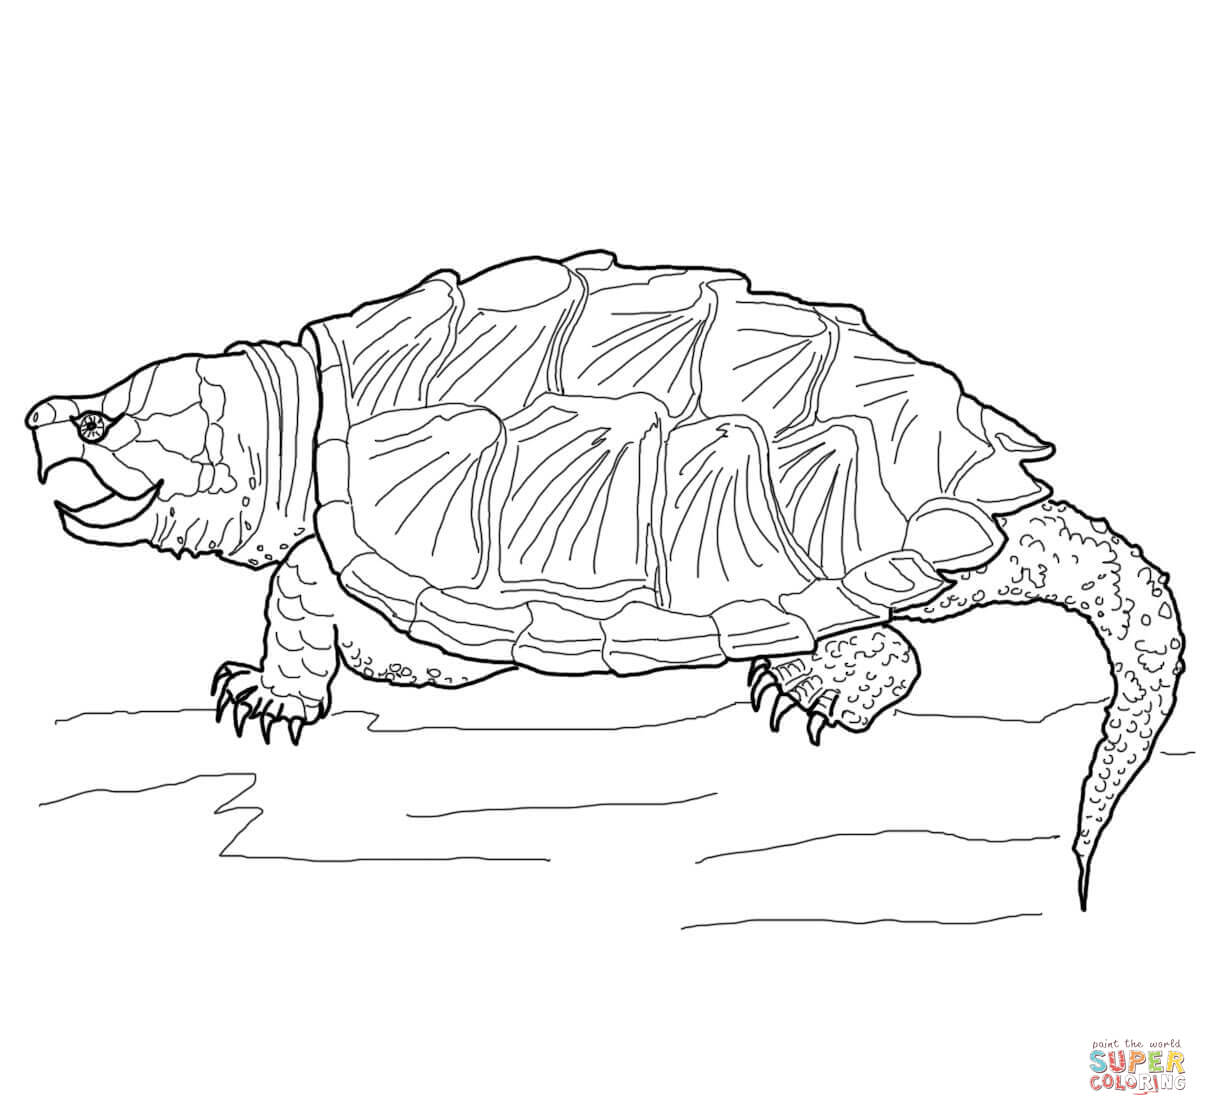 Drawn sea turtle snapping turtle Snapping Alligator coloring Free